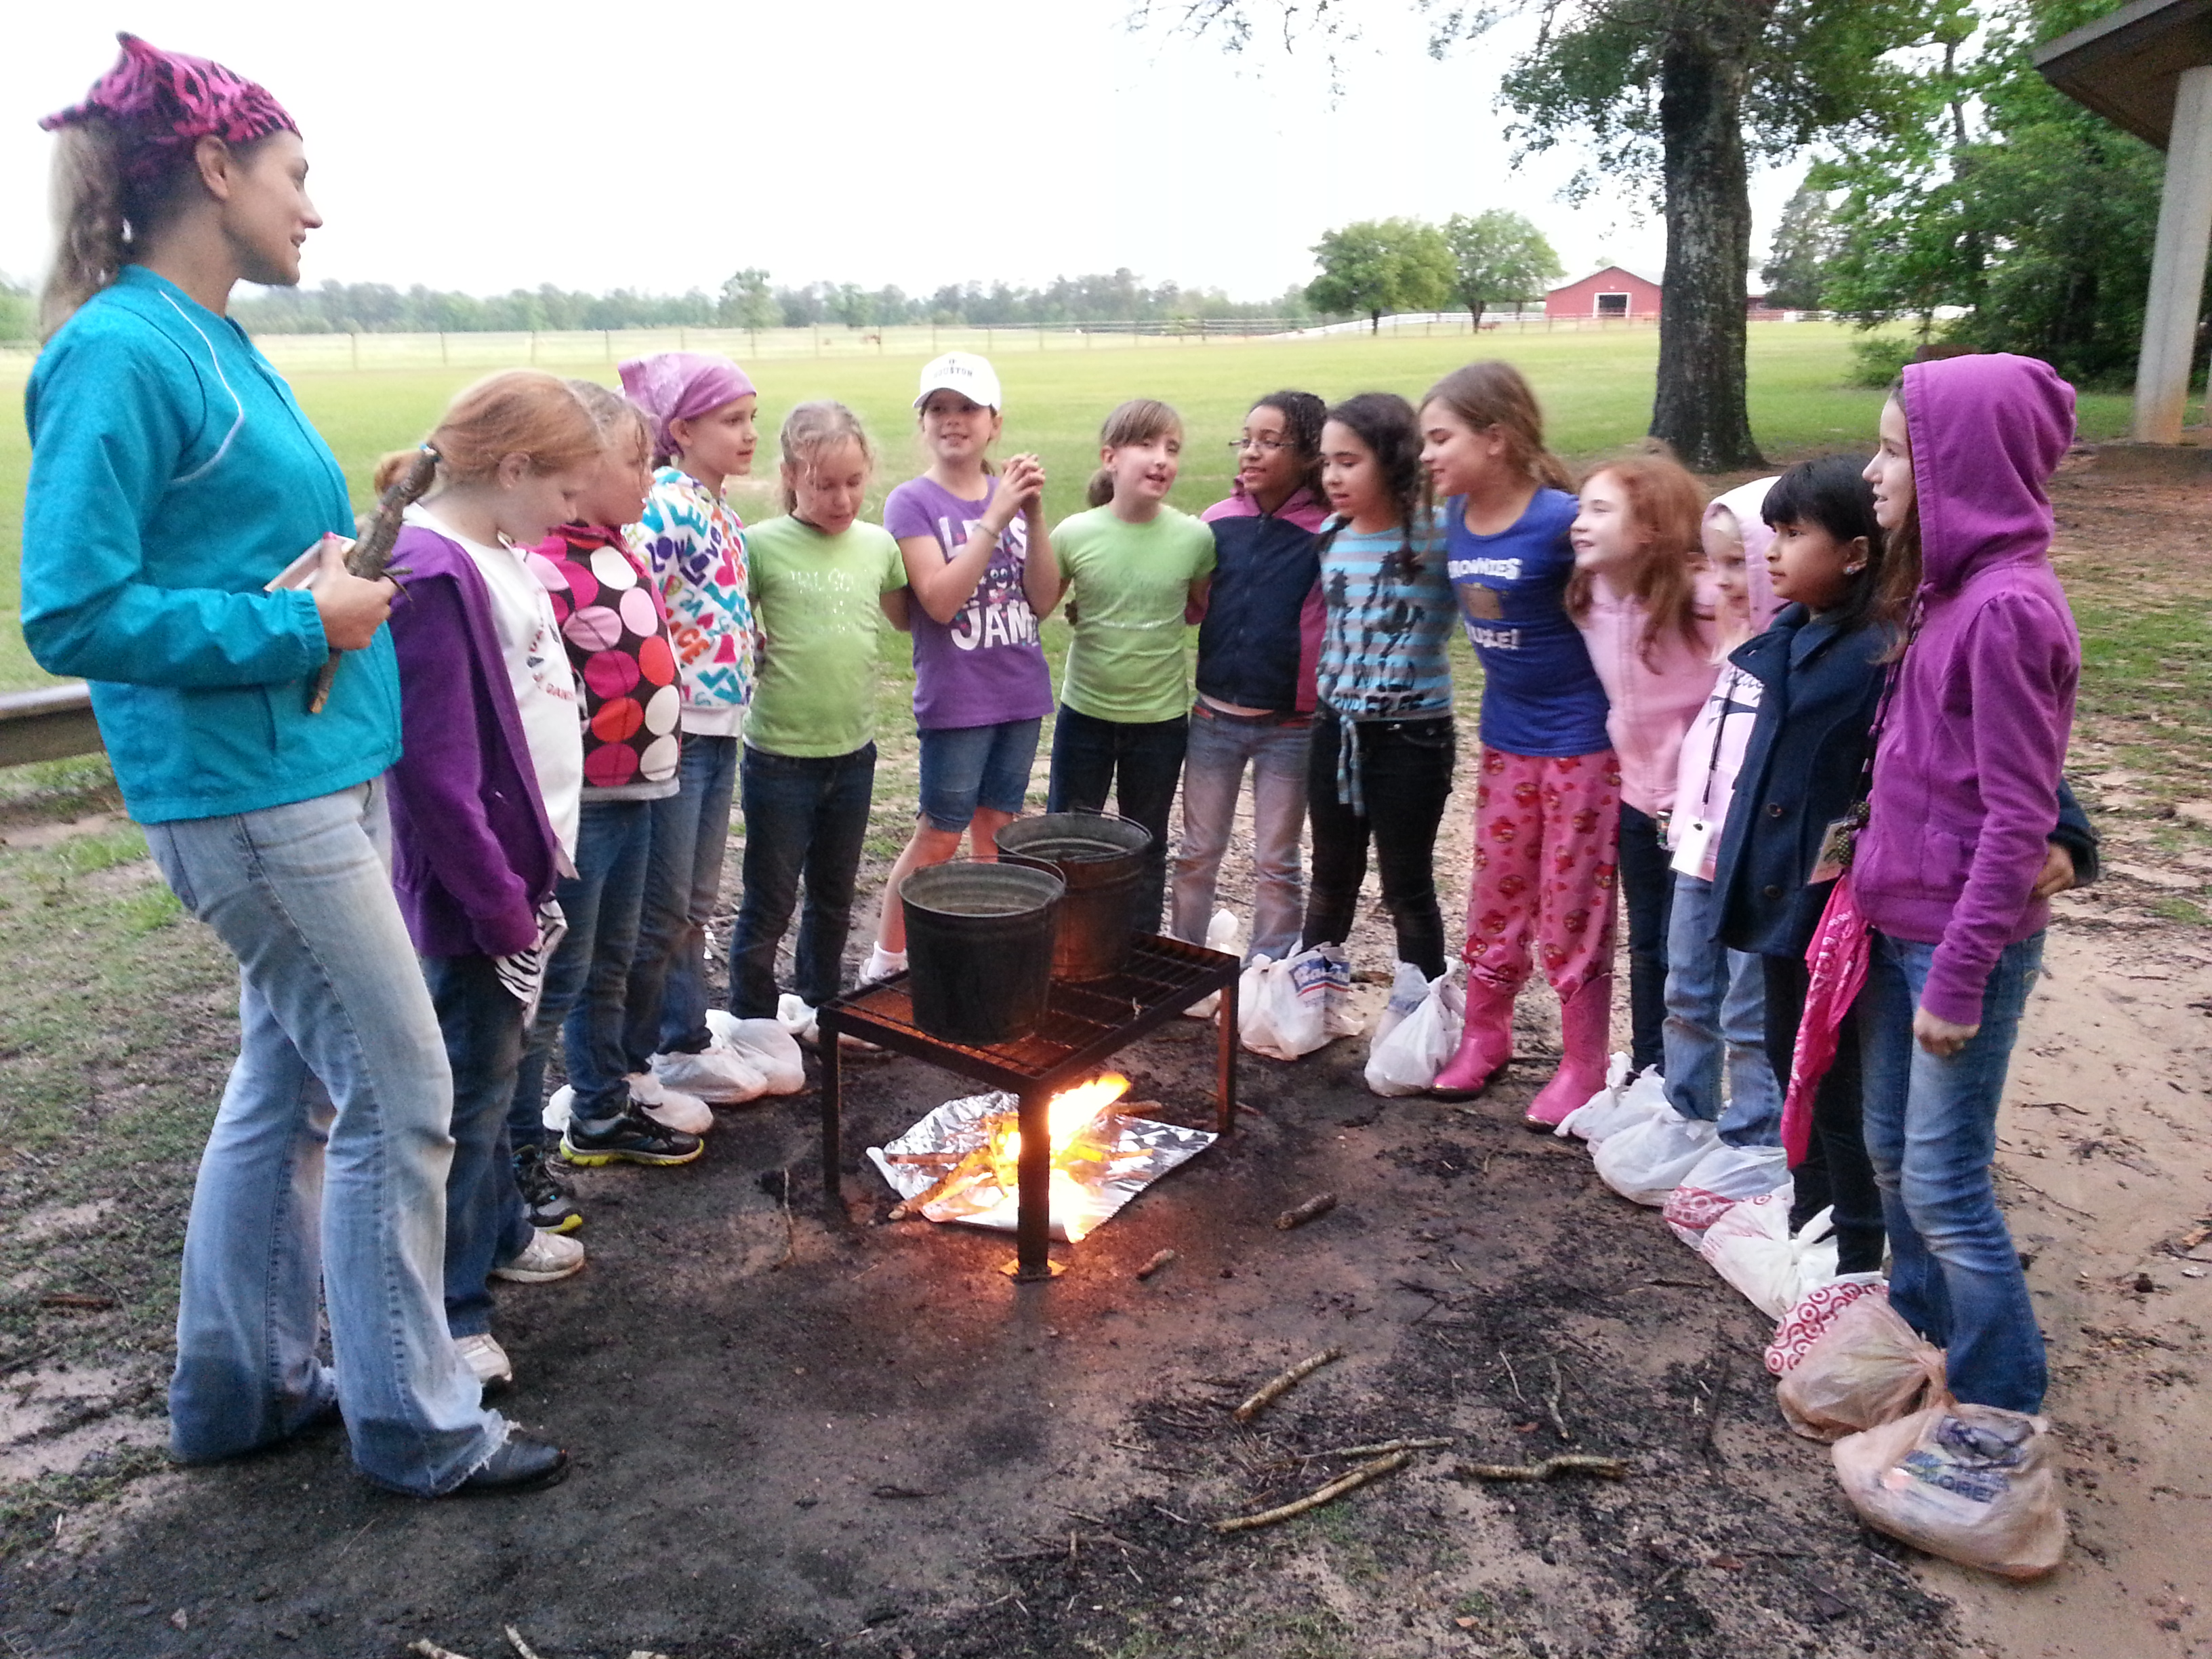 How Much Does It Cost To Transport A Car >> Celebrating Community Brownie Badge While Camping - Scout Leader 411 Blog